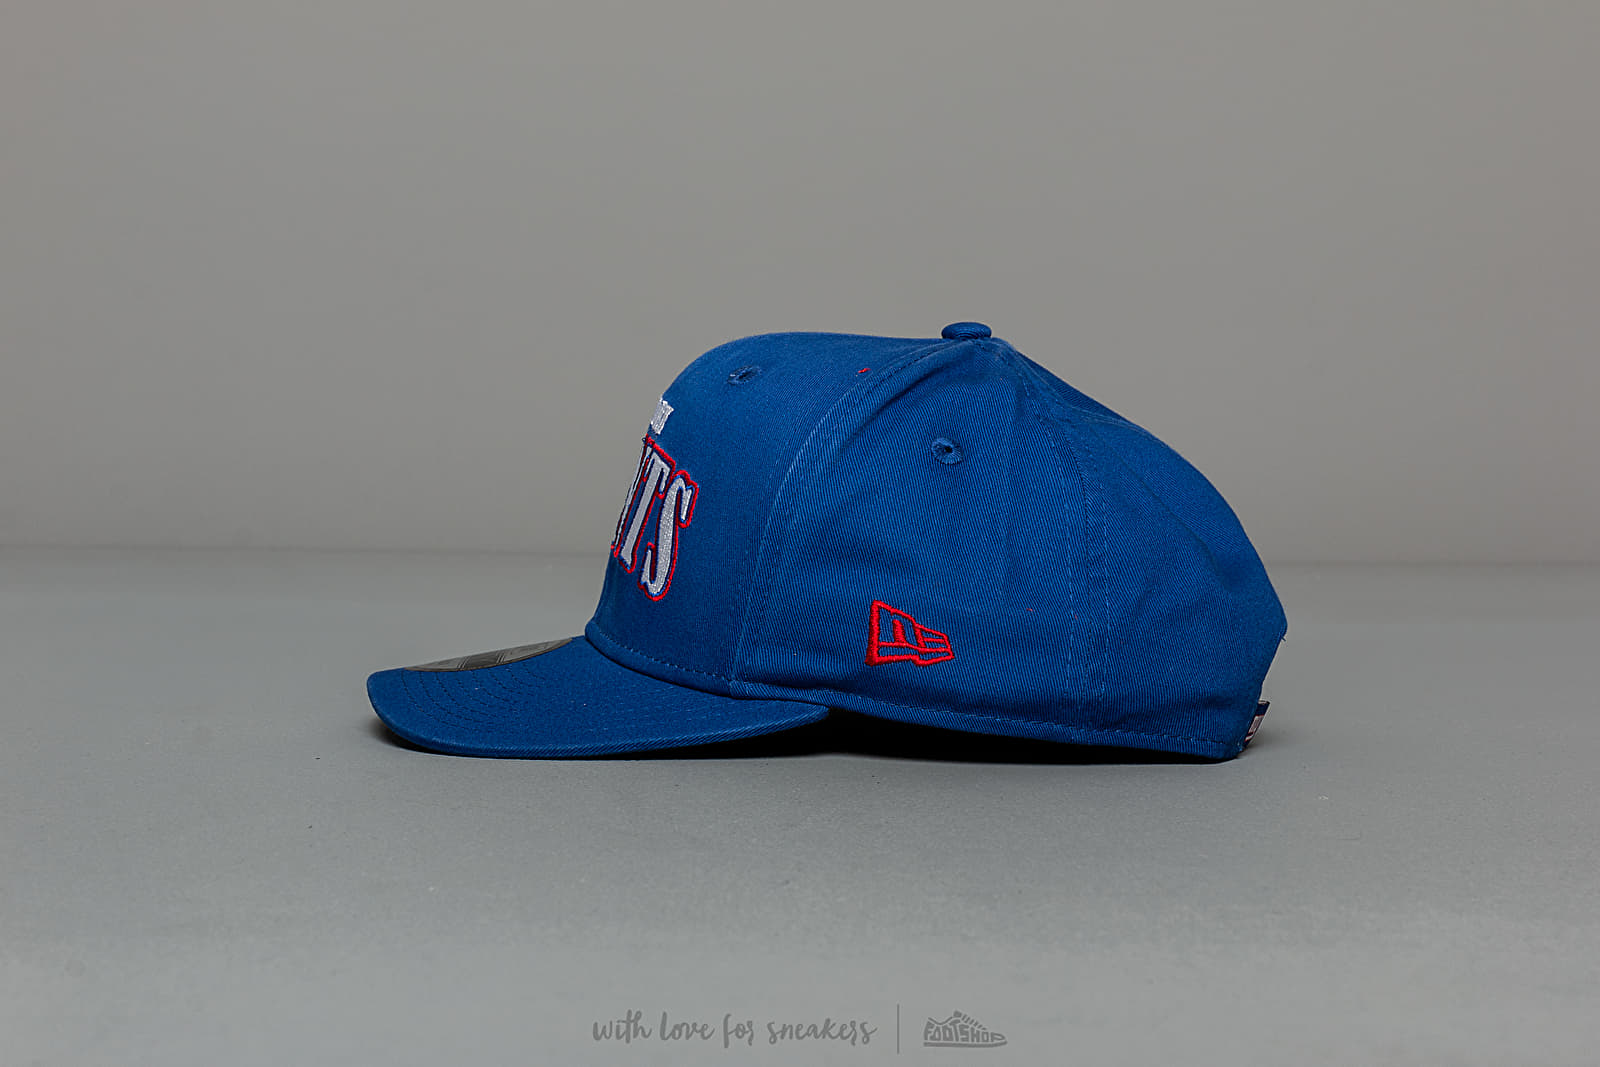 598b2319 New Era 9Fifty NFL Curved New York Giants Snapback Blue at a great price  $41 buy